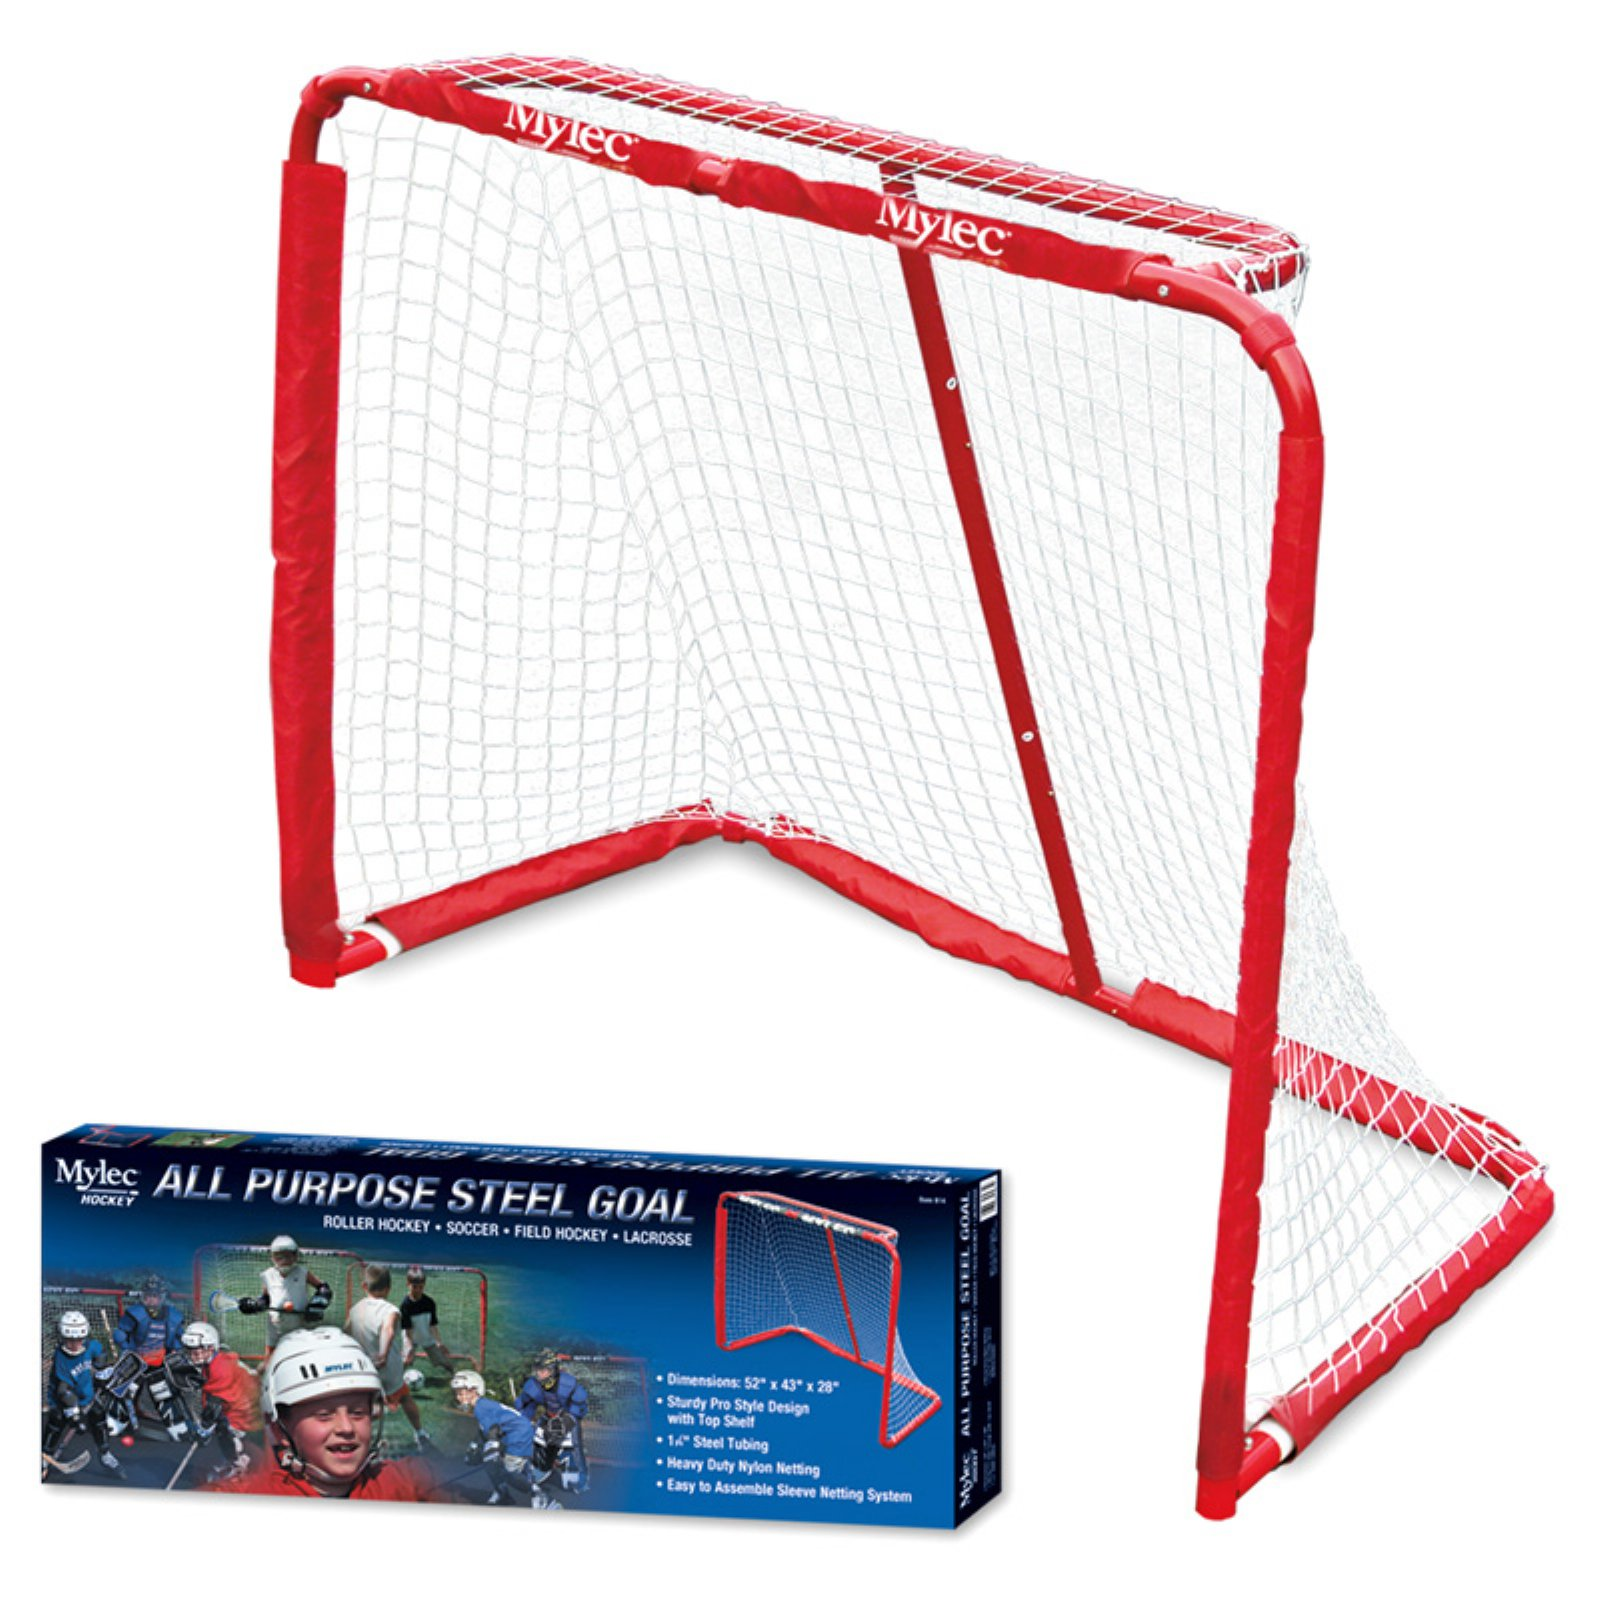 "Mylec Sports 52"" All Purpose Steel Goal for Hockey, Soccer, Field Hockey and Lacrosse"